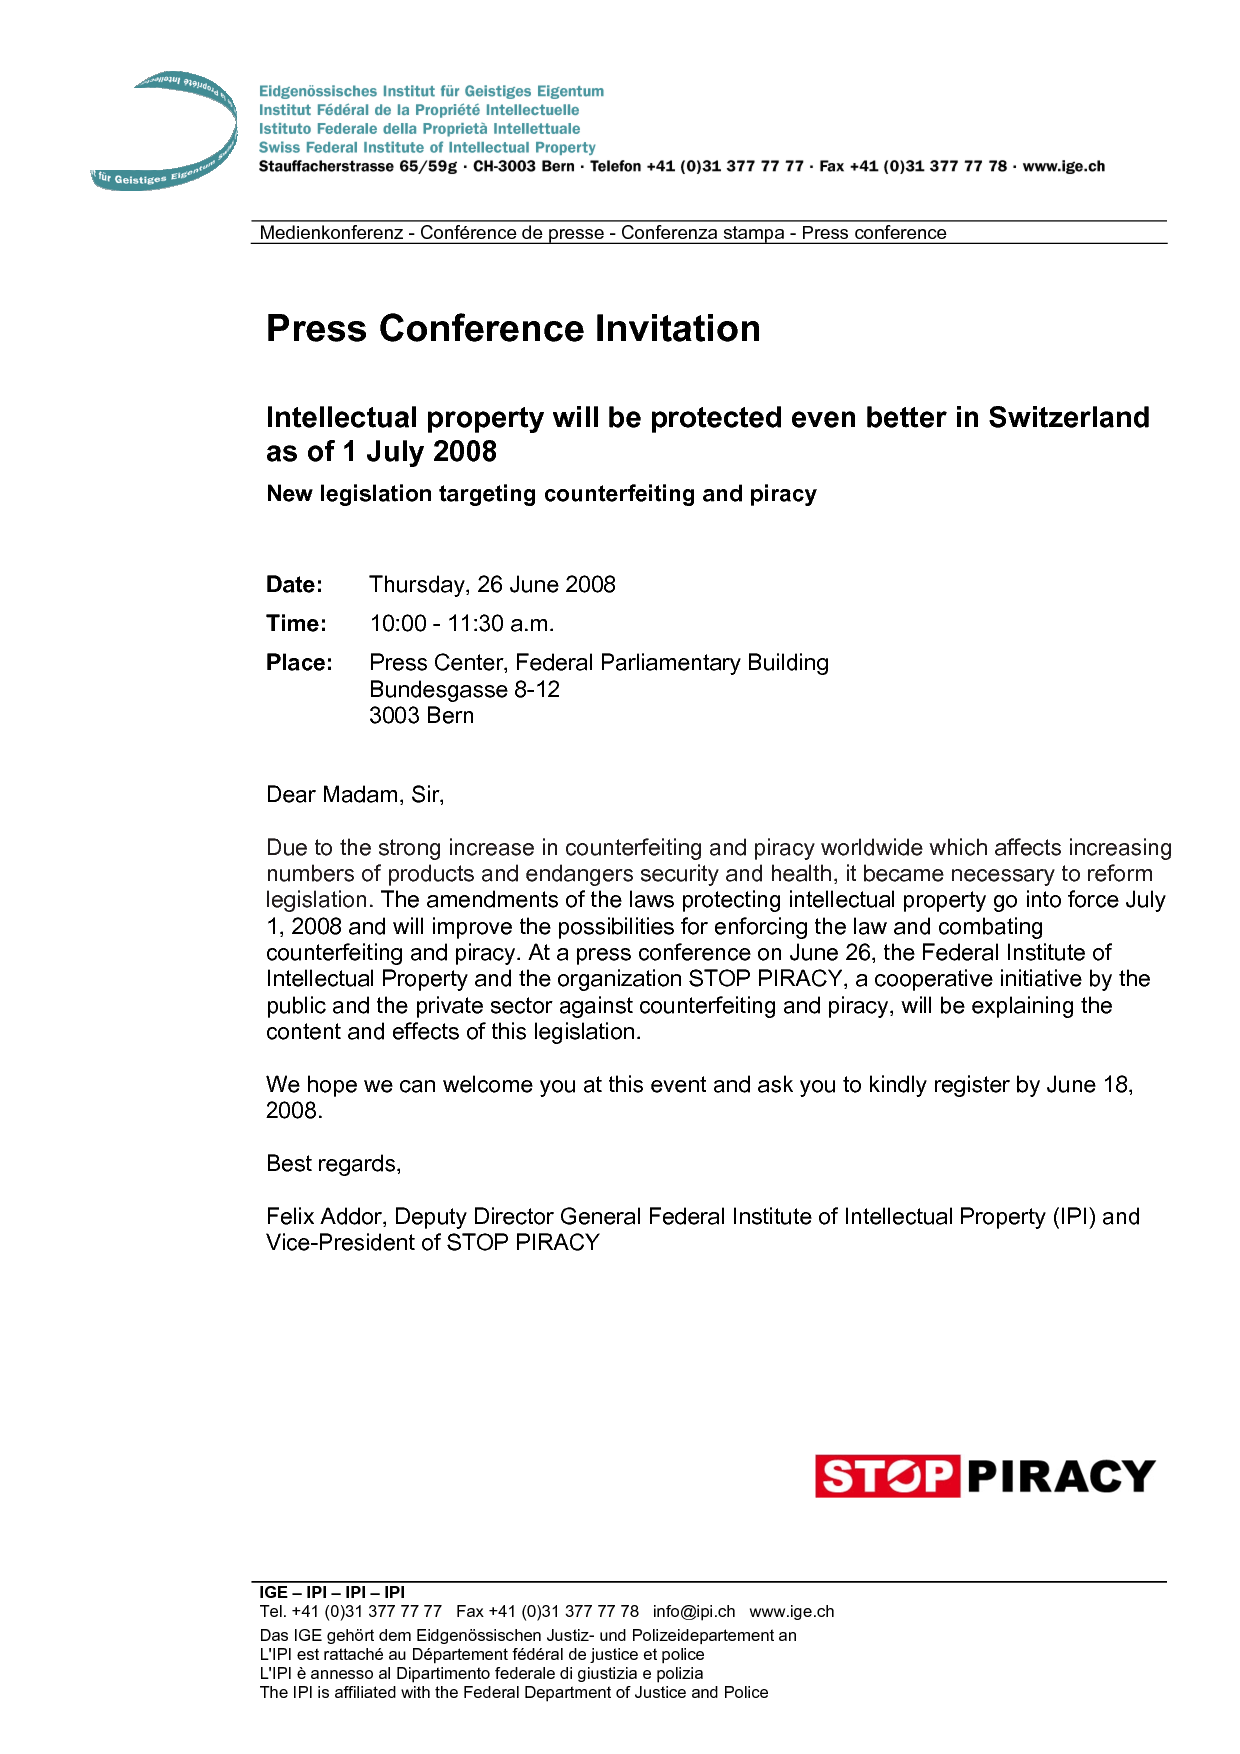 Press Conference Invitation